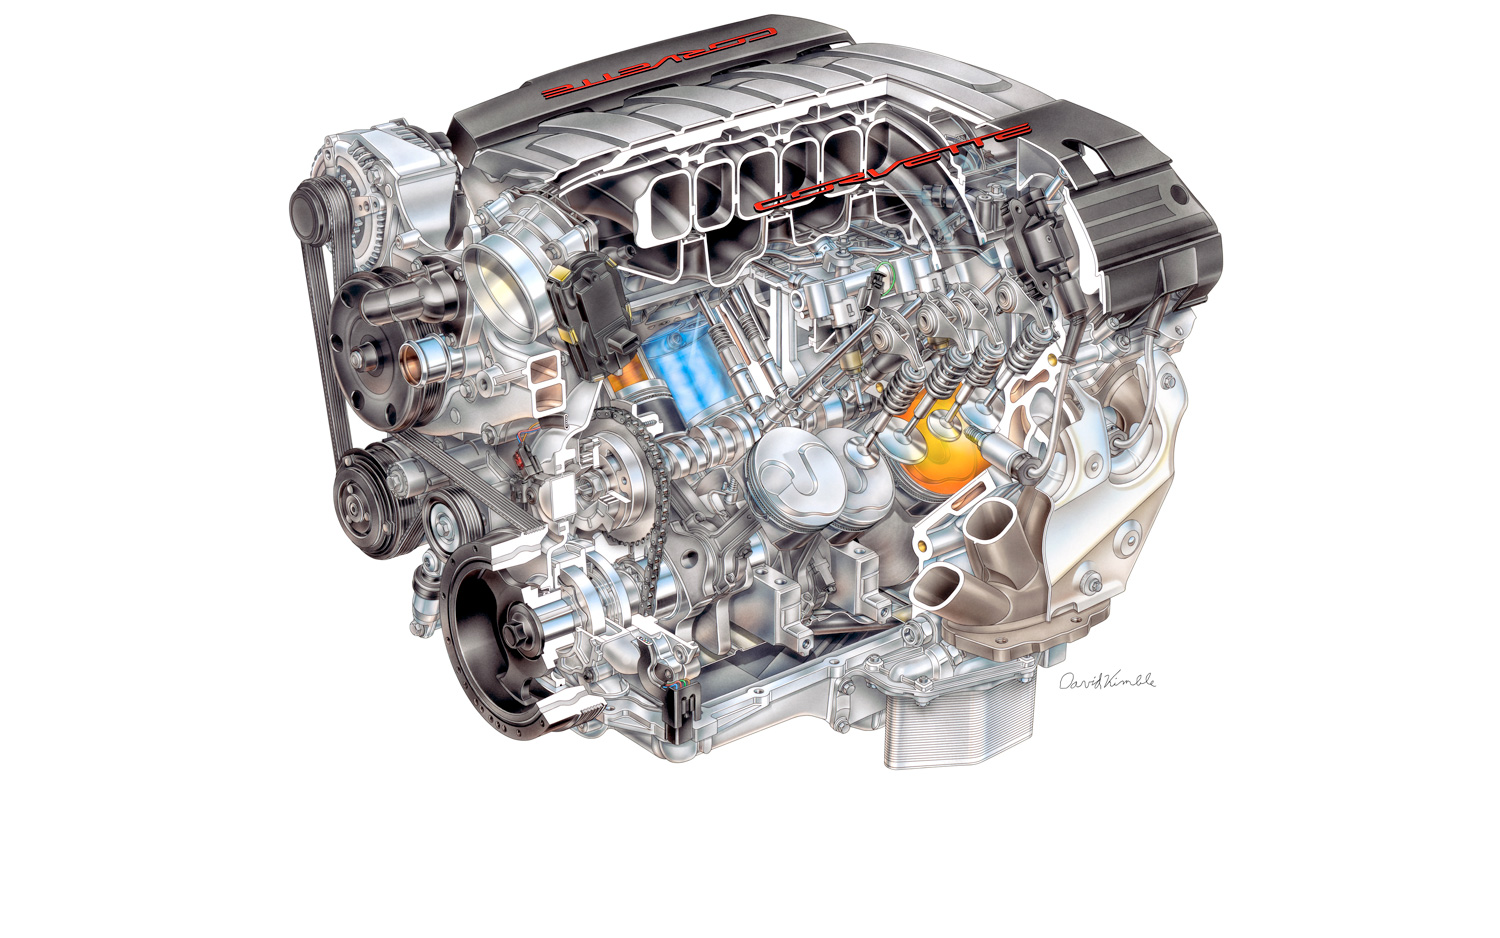 Next Gen Lt1 62 Liter V 8 For 2014 Corvette Revealed With 450 Hp 2000 Chevrolet 3 4 Engine Diagram New Tech